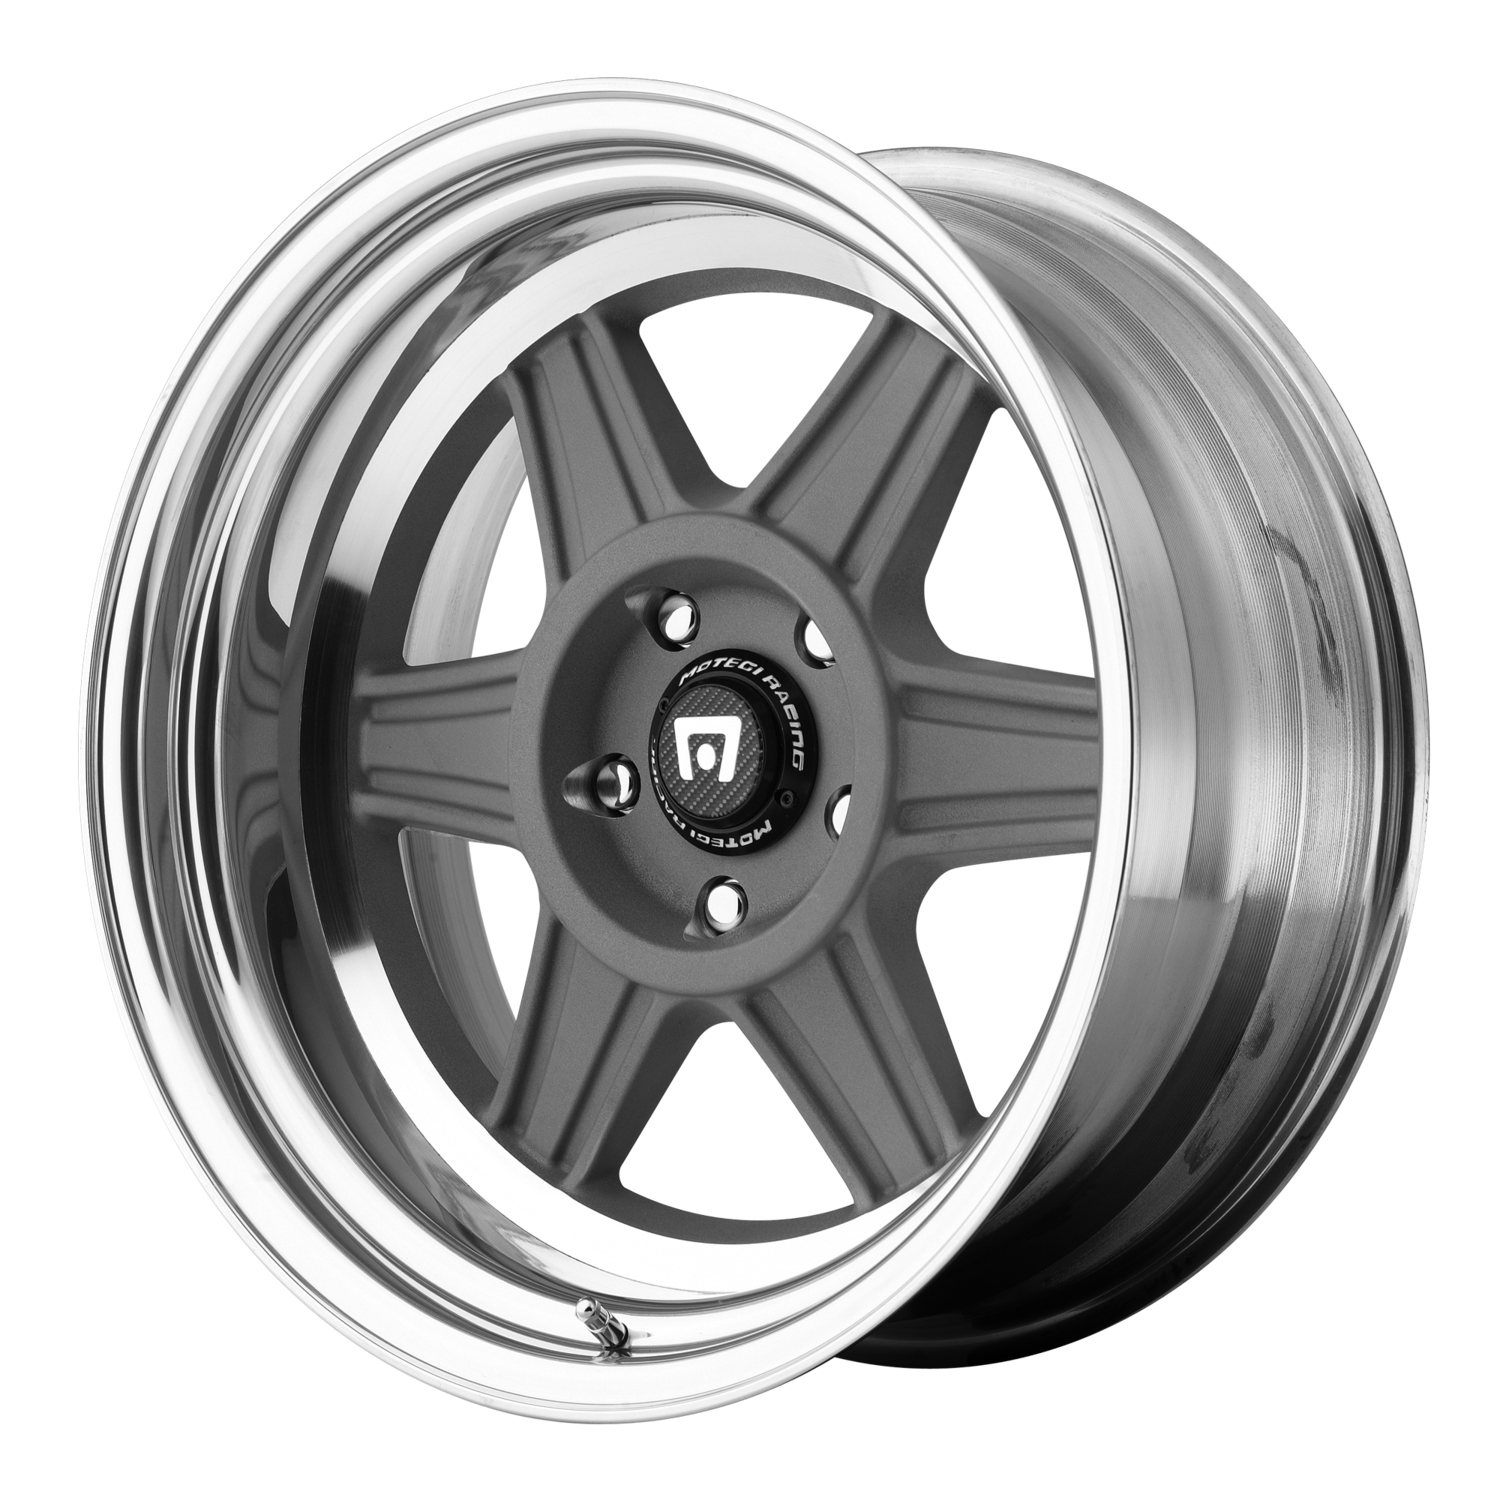 .VR224 Motegi Racing 4 / 5 lug. set of 4 16s 79-93 Mustang